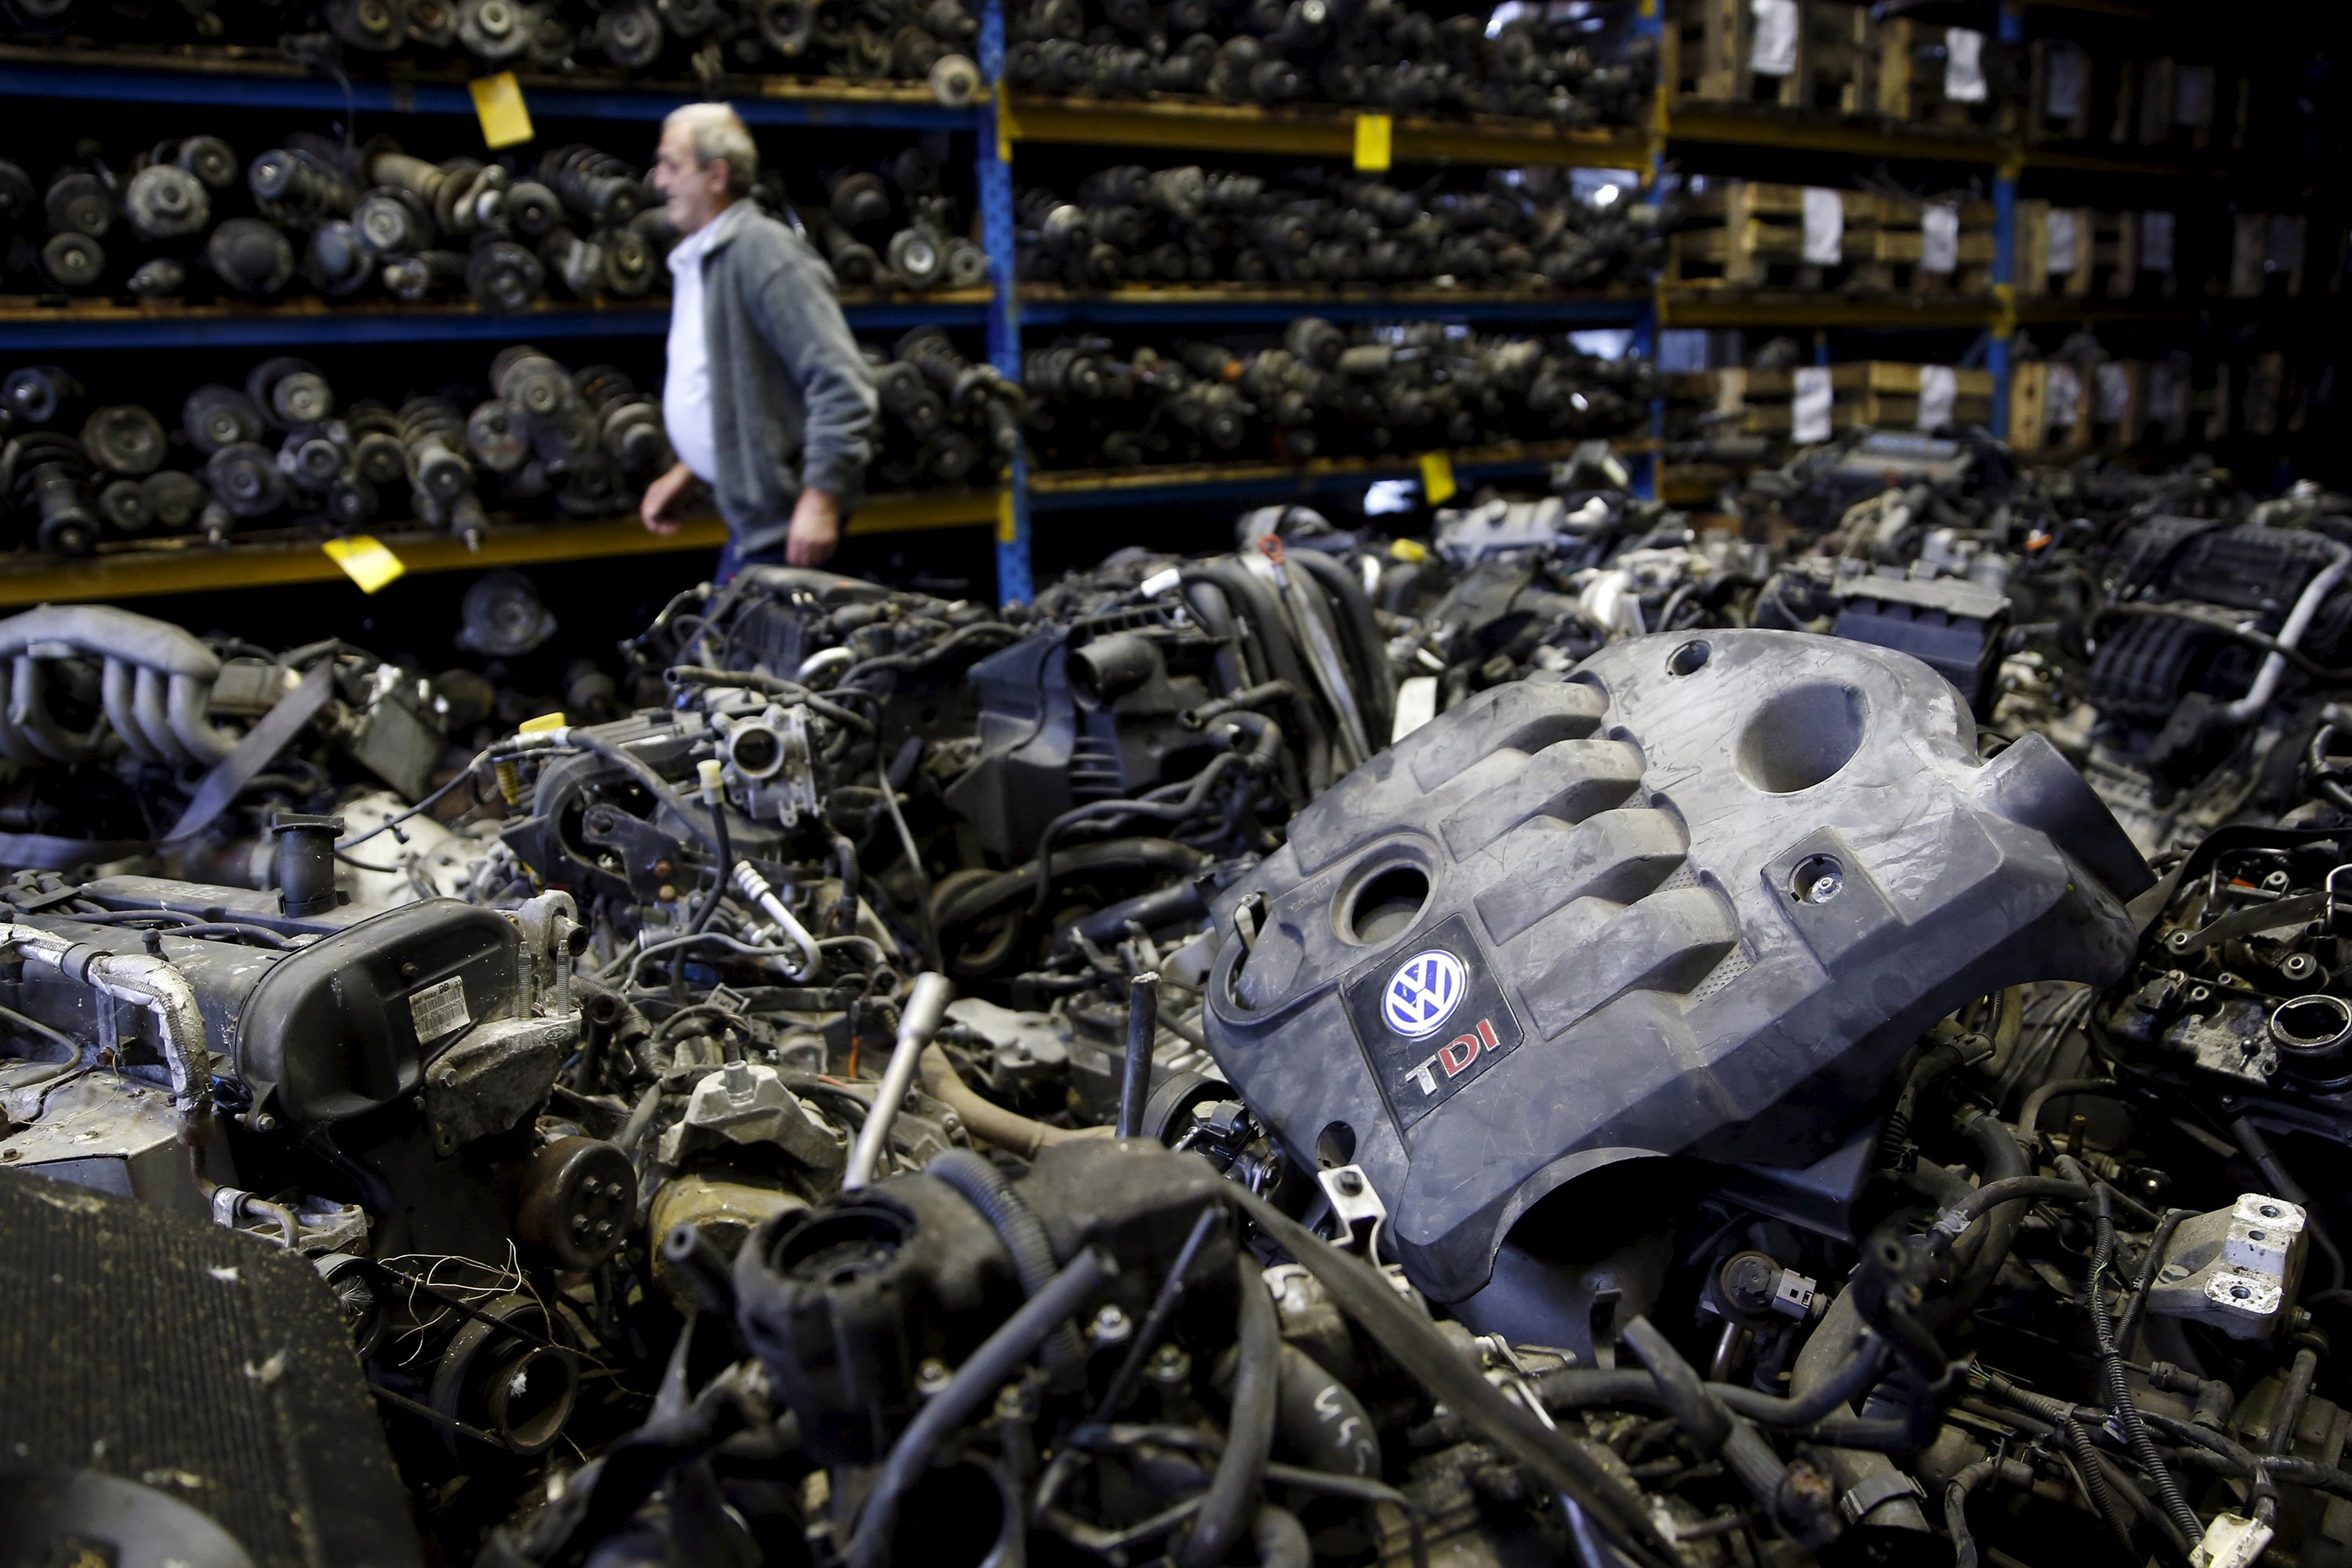 """Volkswagen TDI diesel engines are seen in this photo illustration of second-hand car parts in Jelah, Bosnia and Herzegovina, September 26, 2015. The EU could introduce tougher car emissions tests in the wake of the Volkswagen rigging scandal, senior European officials said. The German carmaker named company veteran Matthias Mueller as its new chief executive on Friday in an attempt to get to grips with a crisis that its chairman described as """"a moral and political disaster"""". REUTERS/Dado Ruvic"""